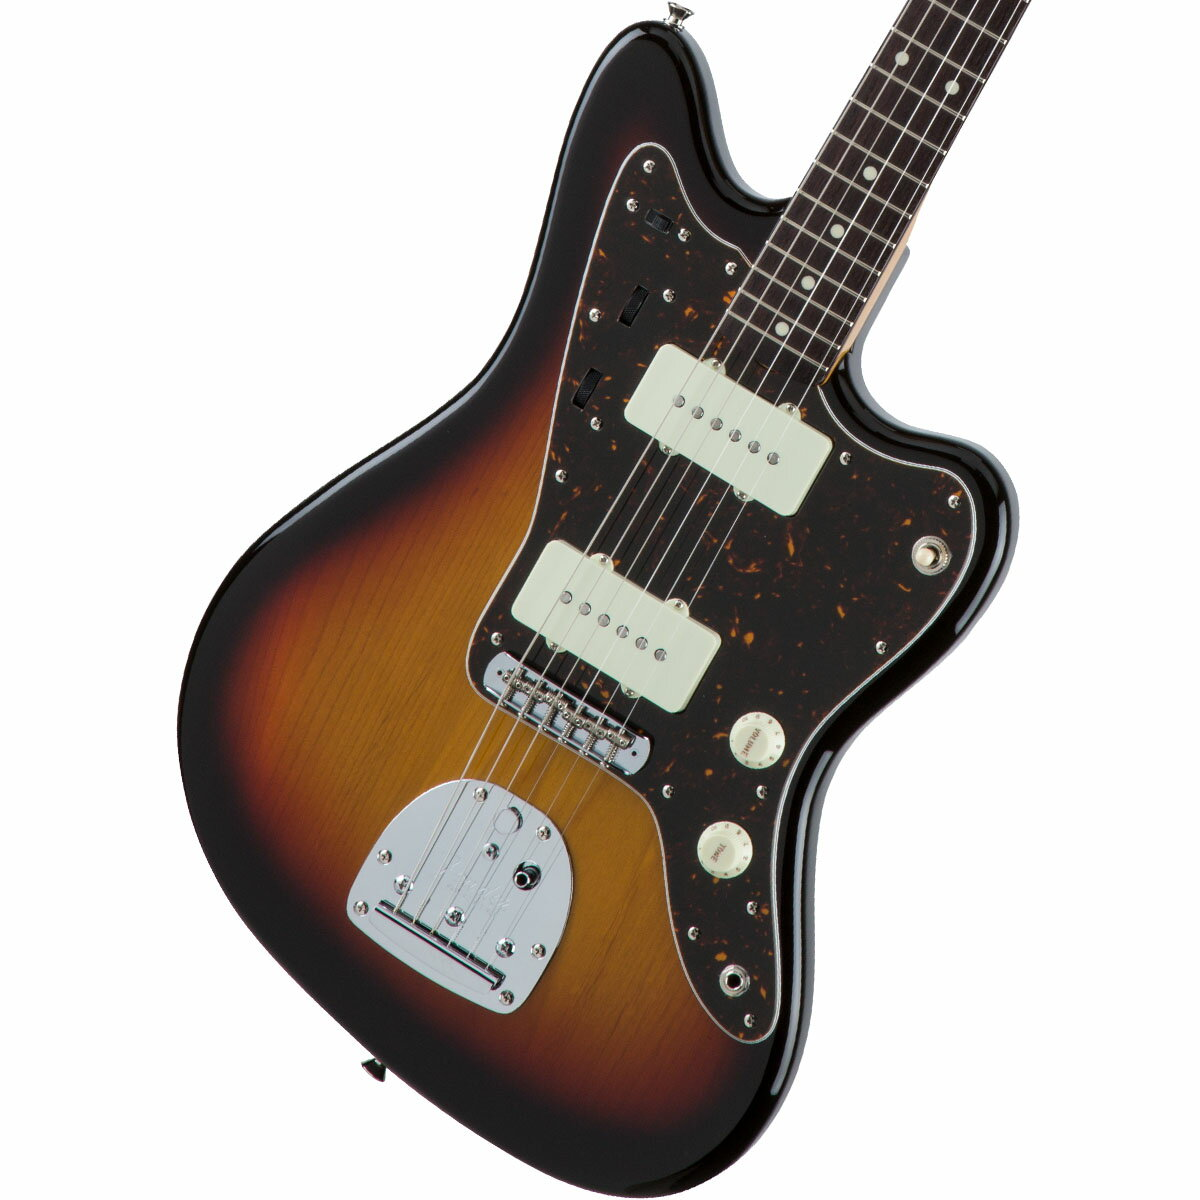 Fender / Made in Japan Traditional 60s Jazzmaster Rosewood Fingerboard 3-Color Sunburst 《カスタムショップのお手入れ用品を進呈/+671038200》